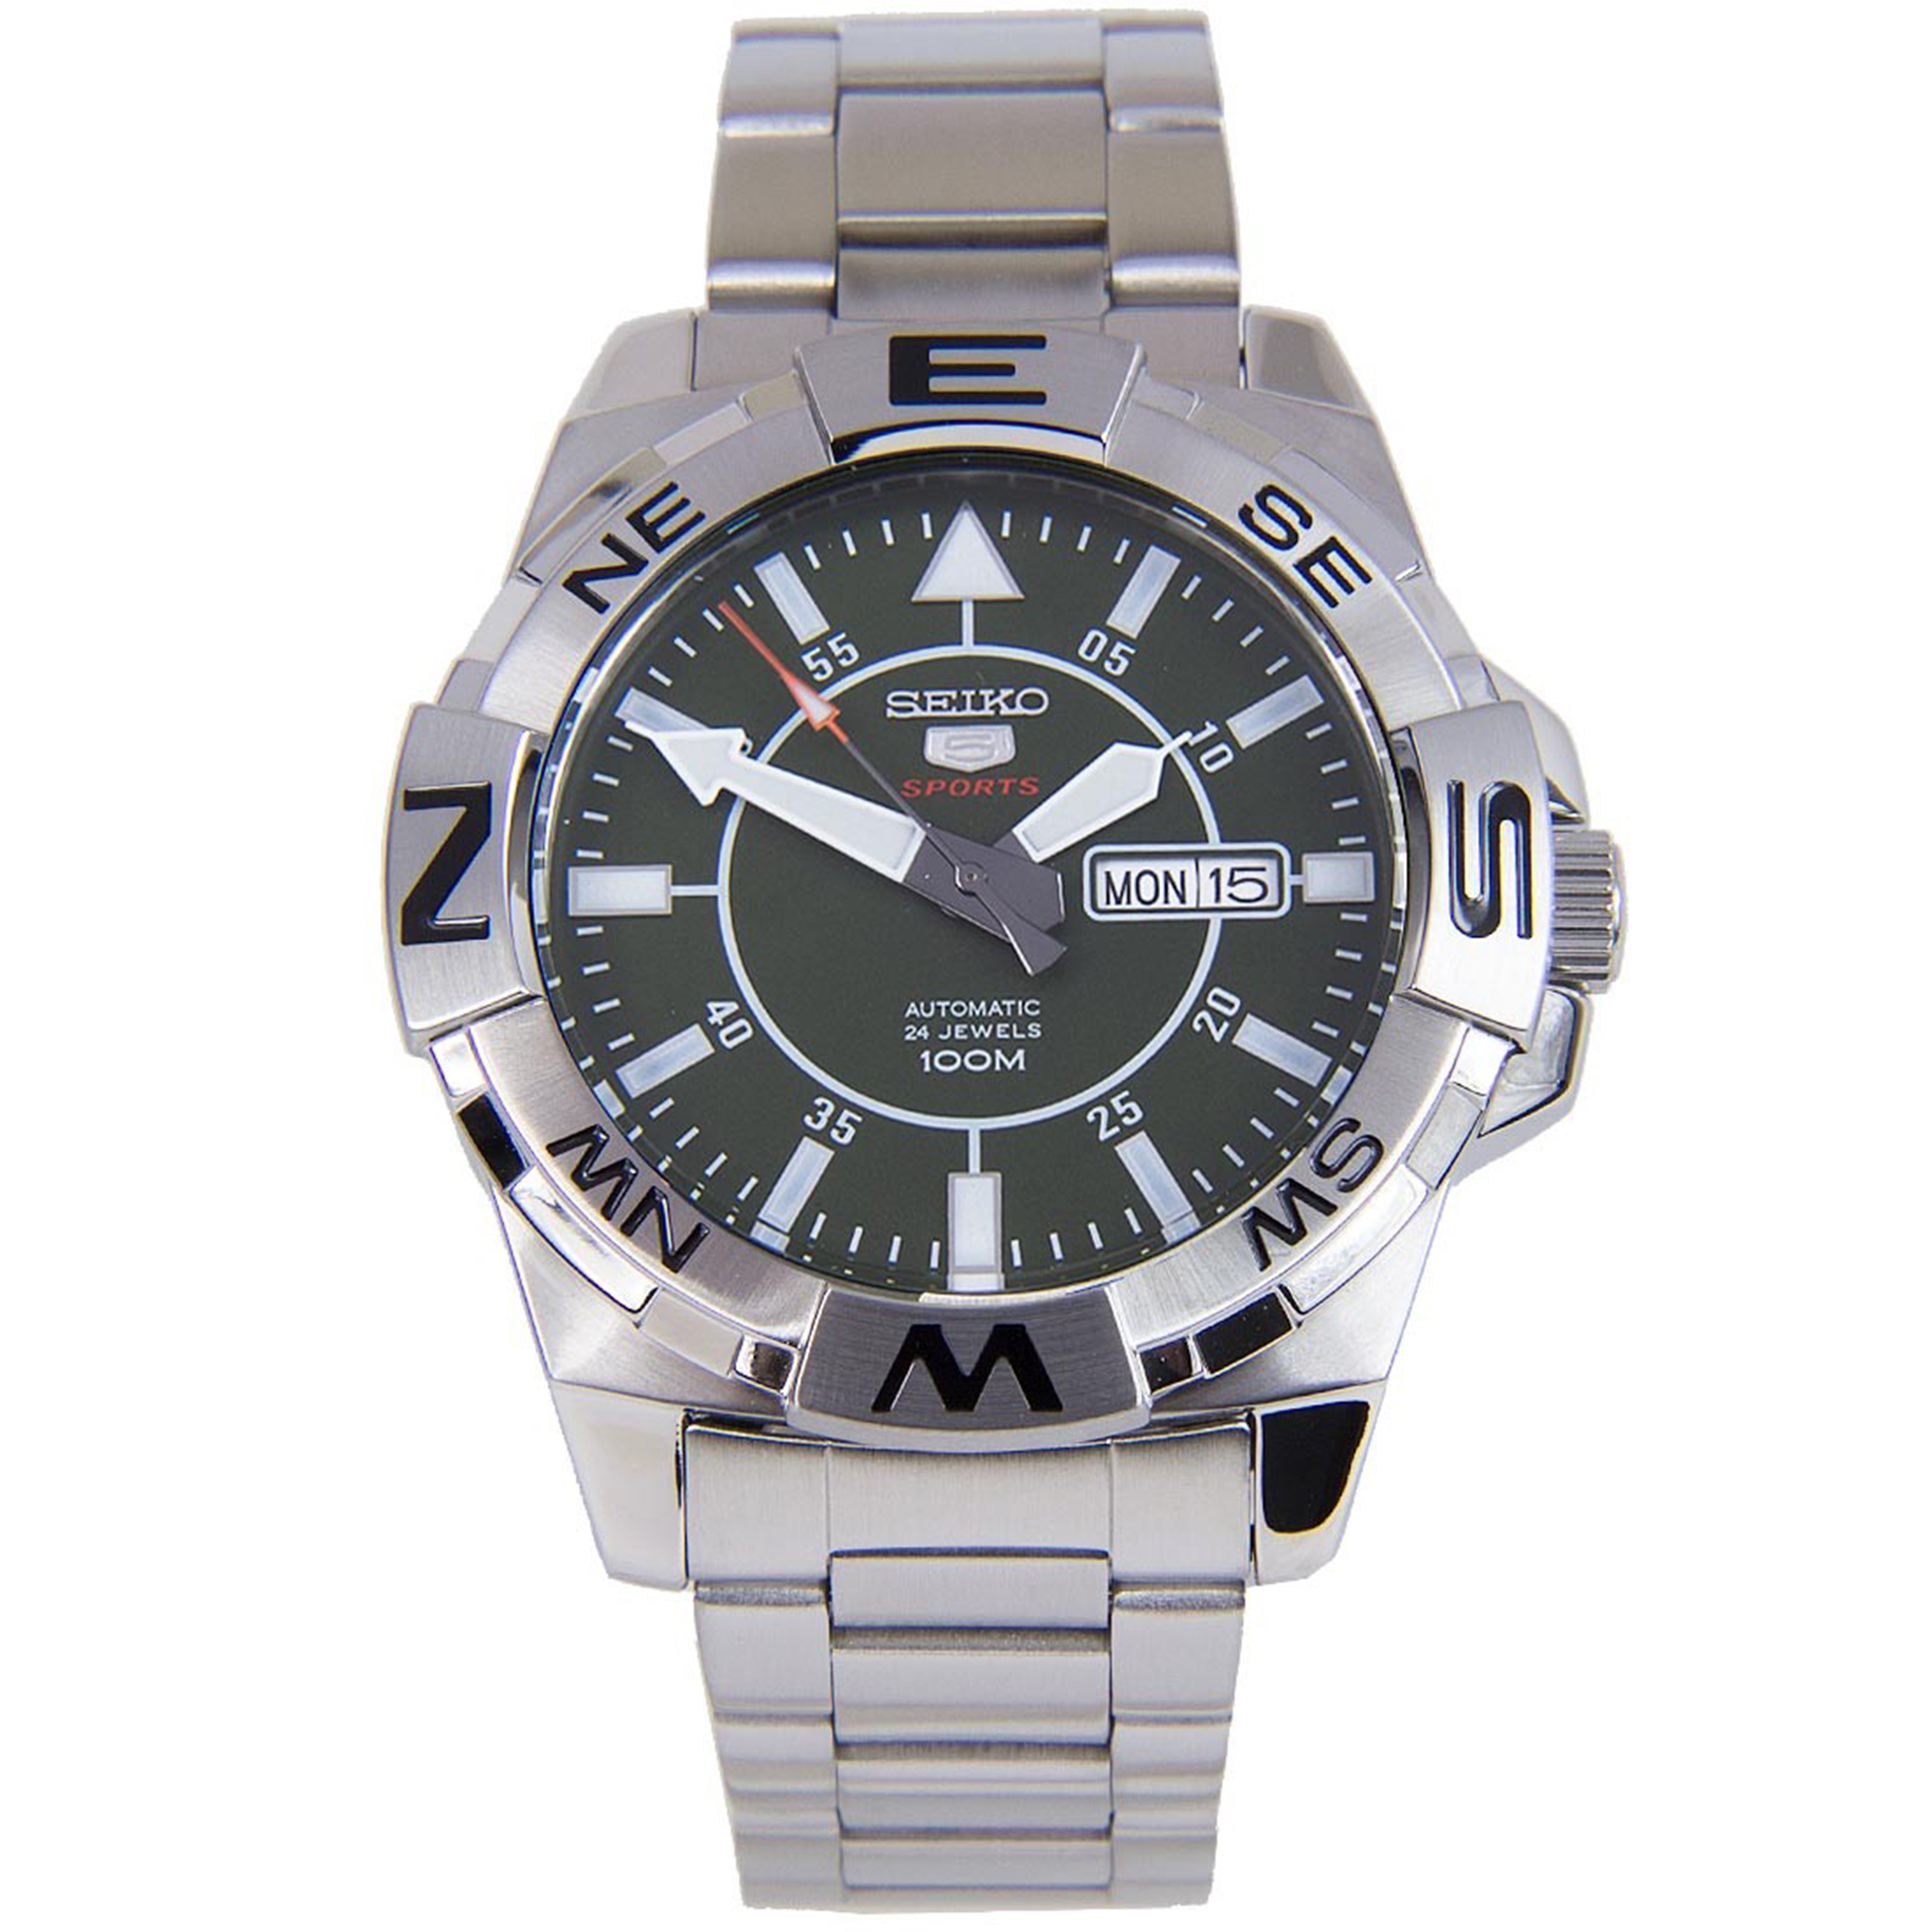 Seiko SE-SRPA59 Seiko Automatic Compass Diver Stainless Steel Green Dial Glassback